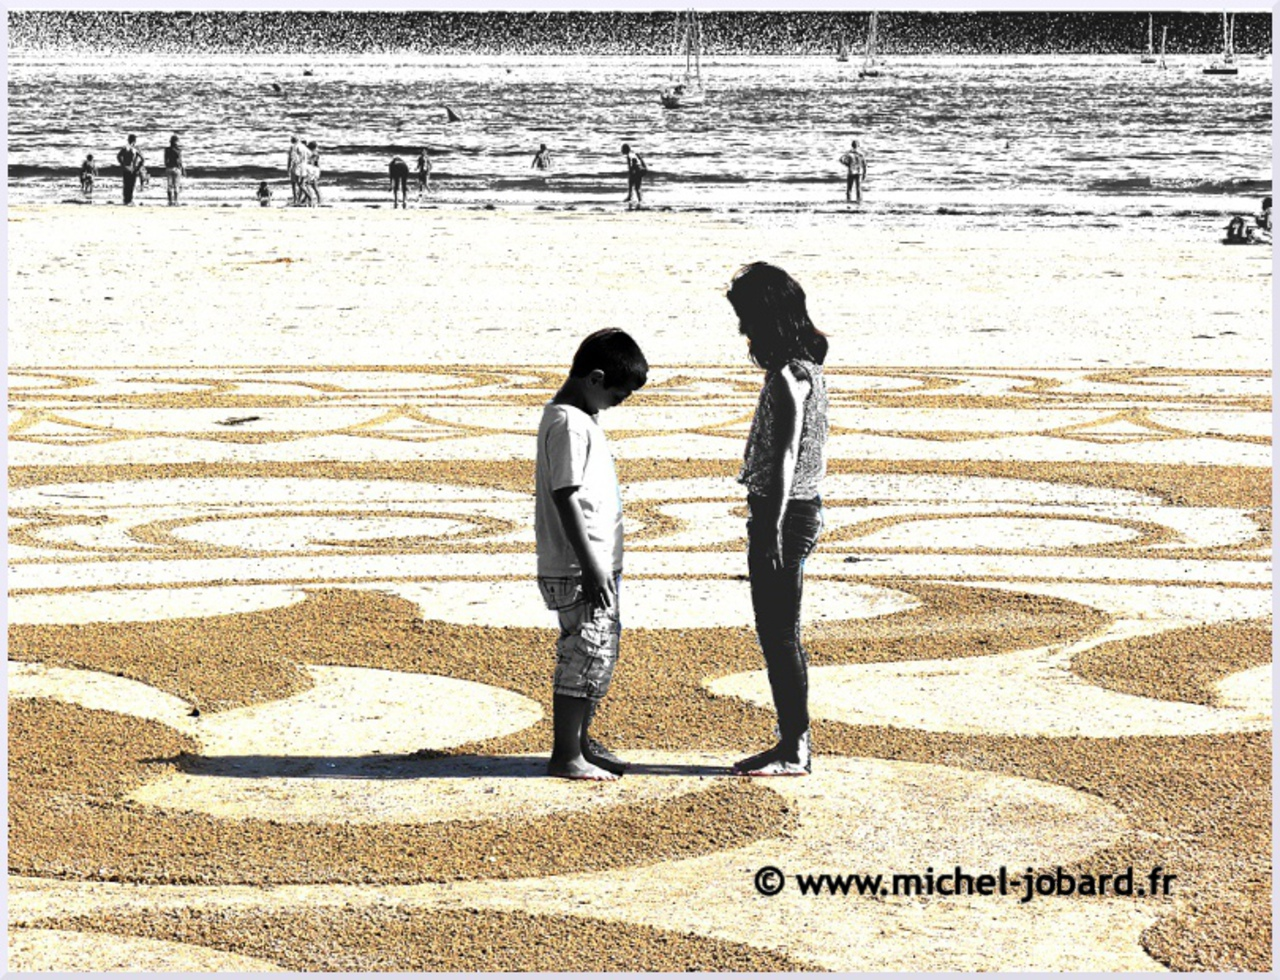 Fresque Beach art Ra ma da sa, Michel Jobard